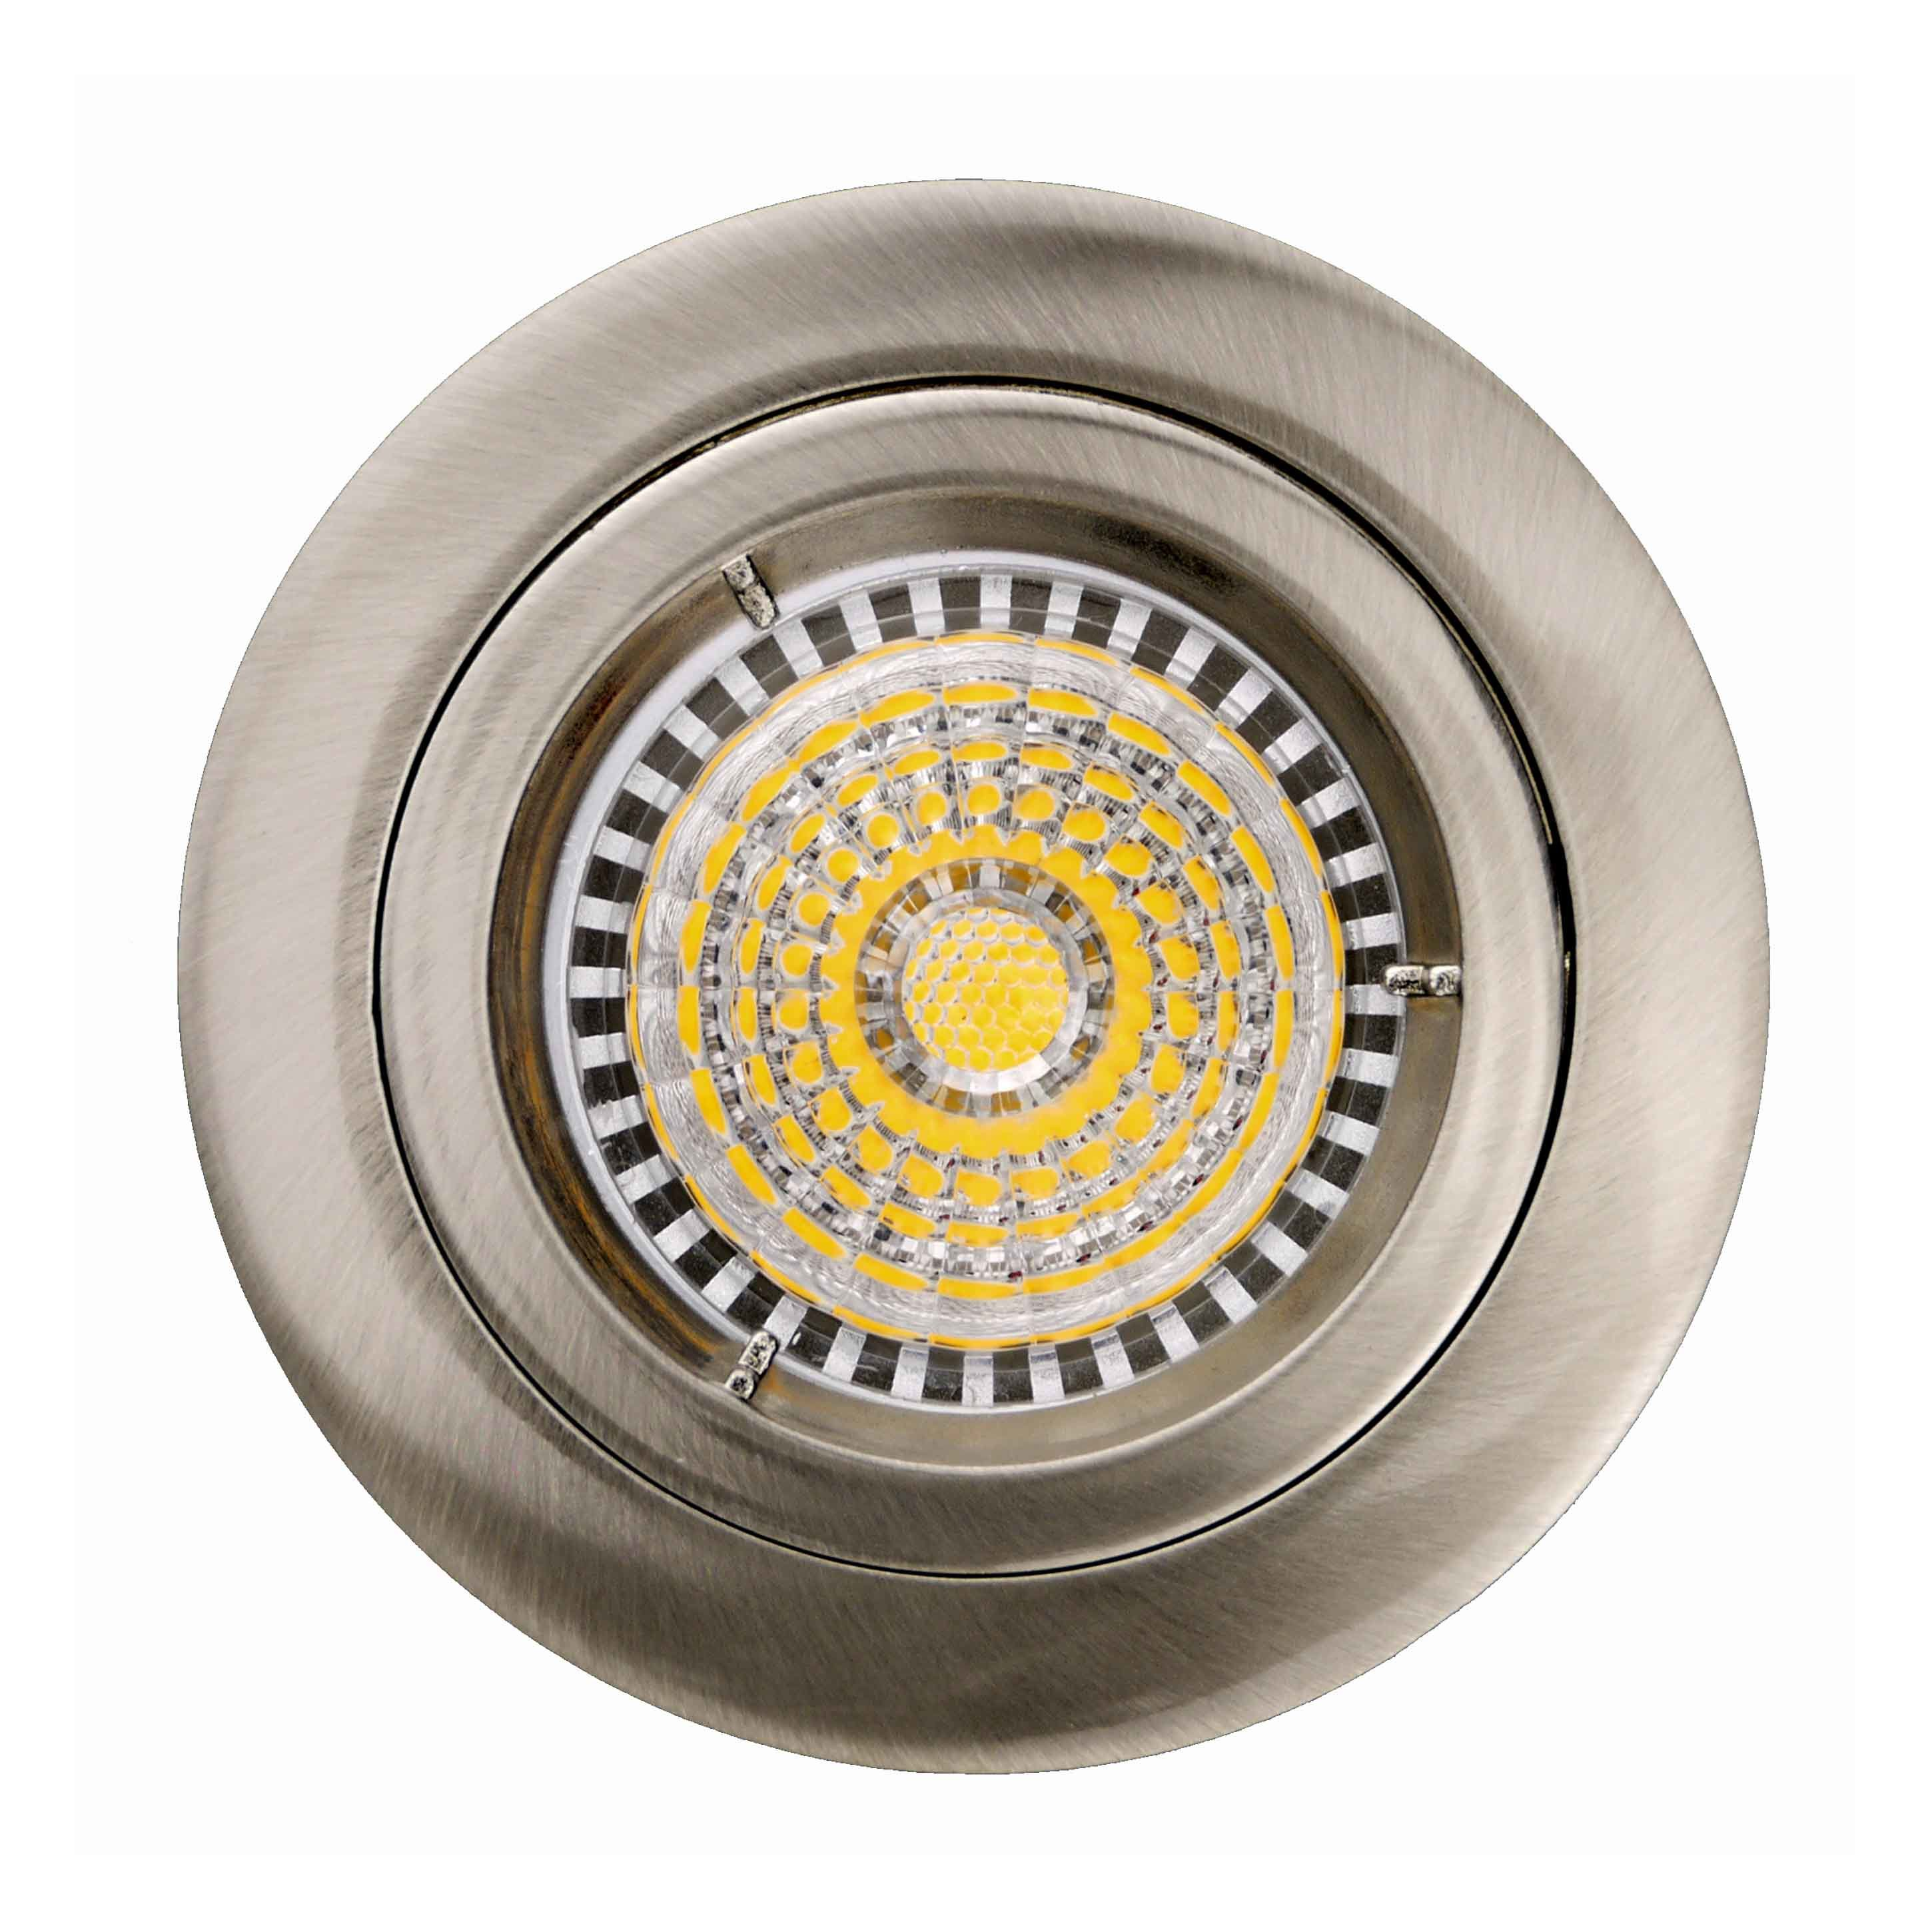 Die Cast Aluminum GU10 MR16 Fixed Recessed White Satin Nickel Round LED Light (LT1100)